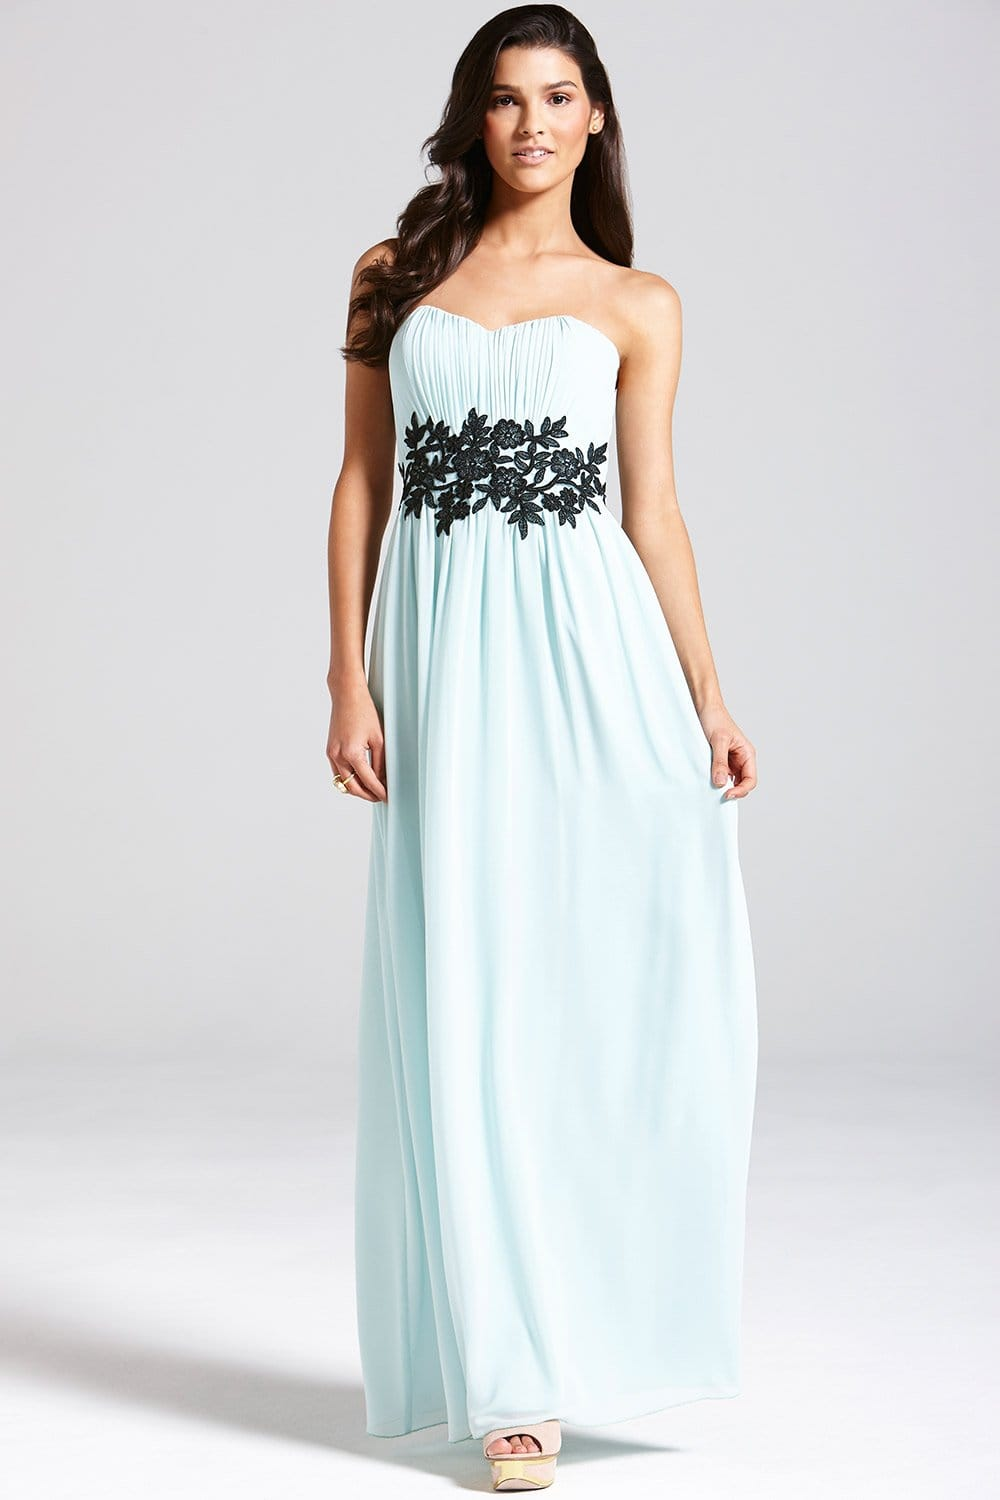 Mint Embroidered Waist Maxi Dress From Little Mistress Uk